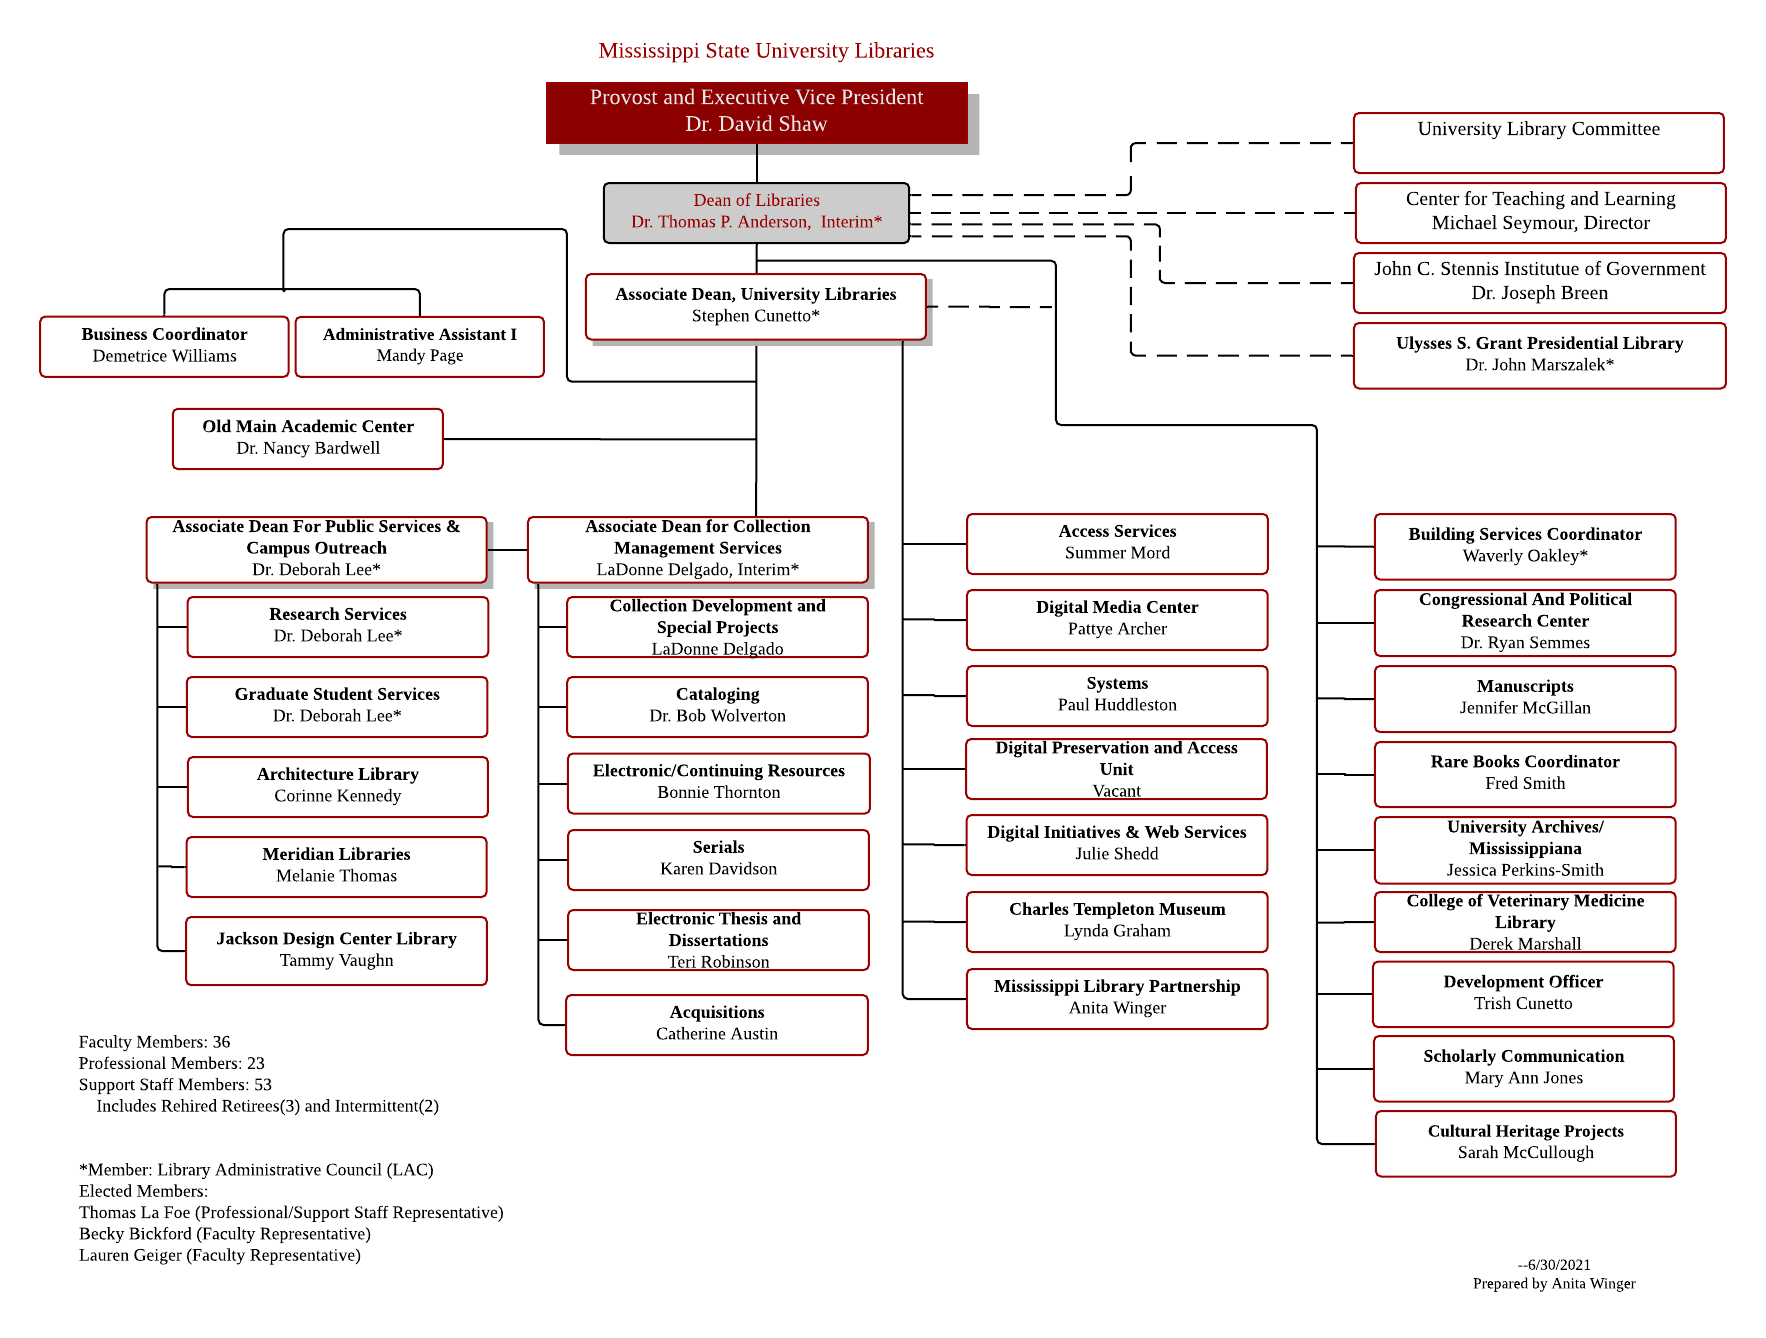 Mississippi State University Libraries organizational chart